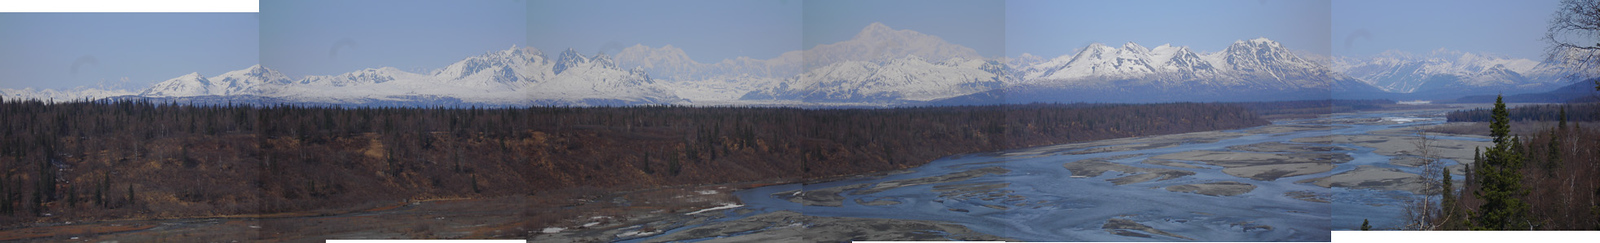 Chulitna River and Denali.